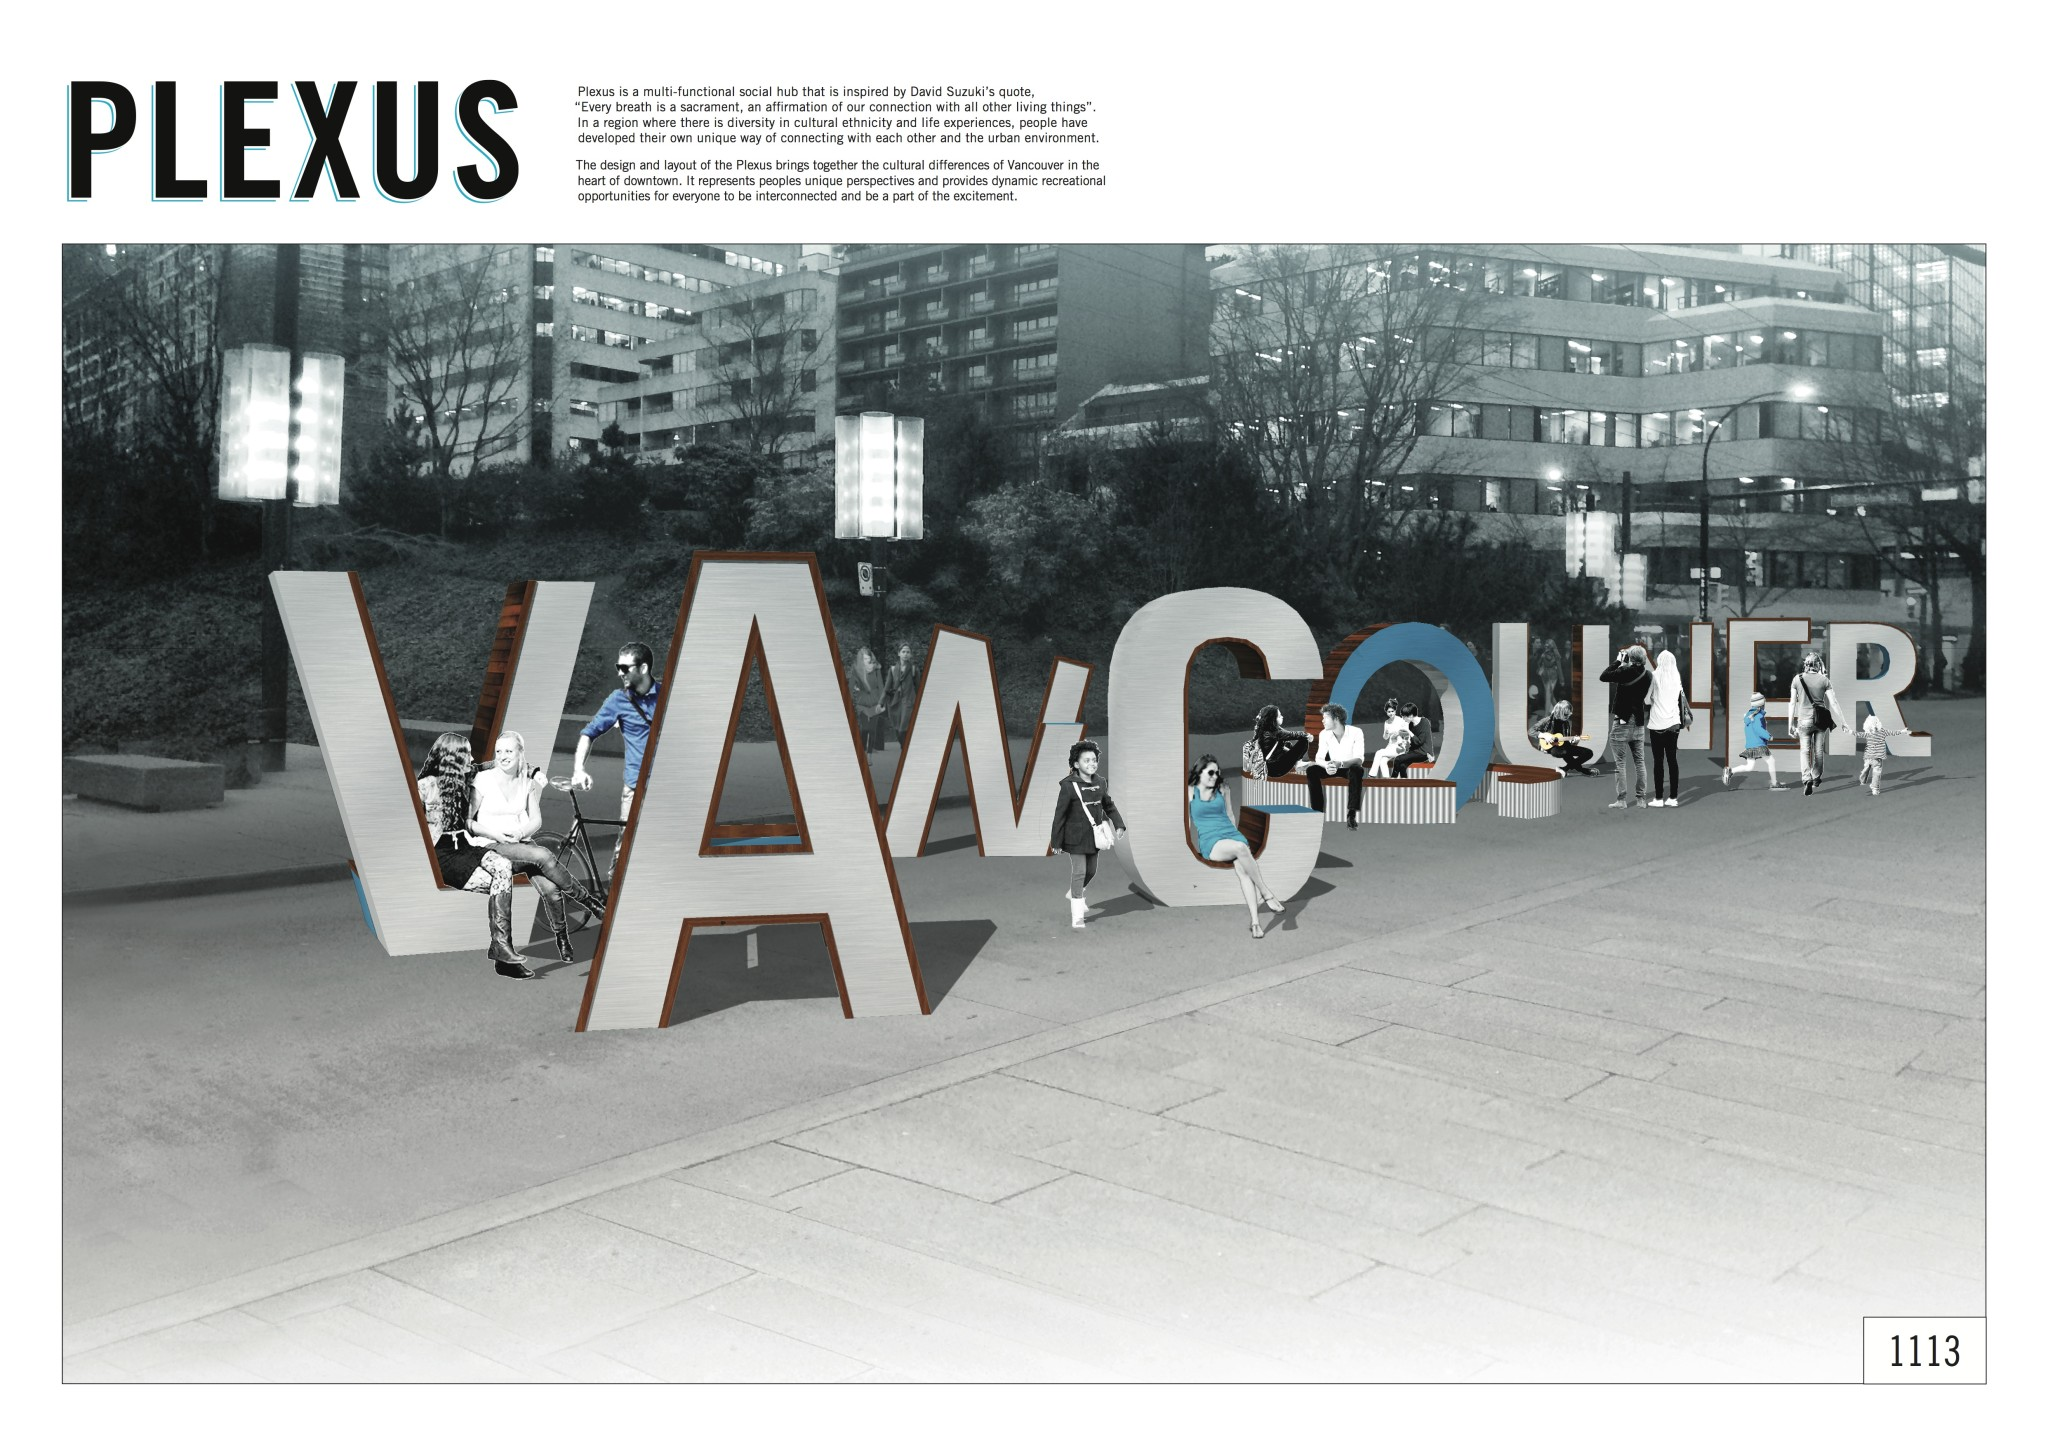 Image: City of Vancouver